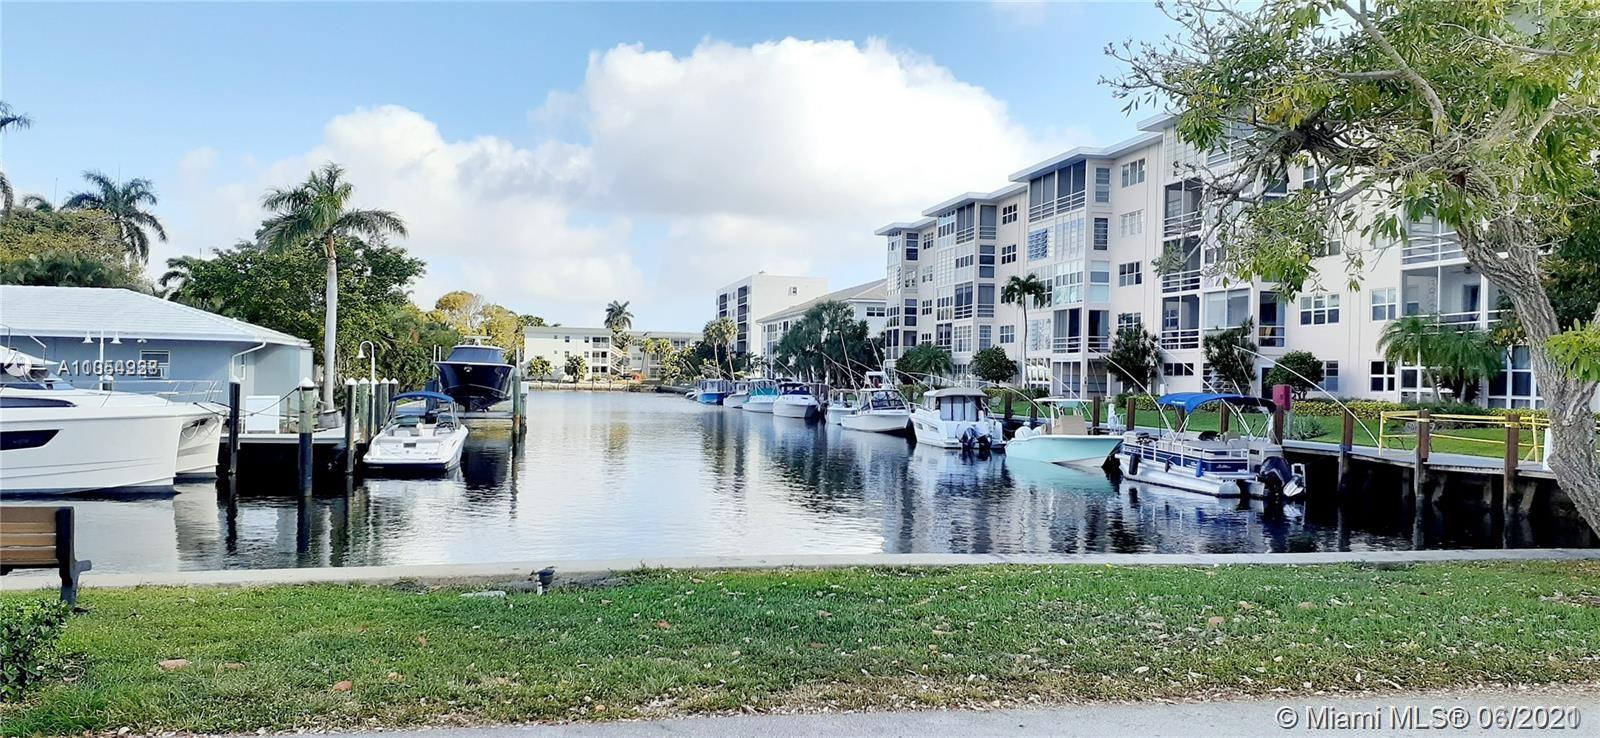 Spacious and cozy condo in Lauderdale by the Sea. 1 bed 1 1/2 bath. Minutes to the beach and shopping plaza. Tiled throughout, furnished. Enjoy community pool and barbecue area. Plenty of guest parking. Elevator in the building. Fur-babies are welcome (restrictions apply) Water included, available June 2021- December 2021